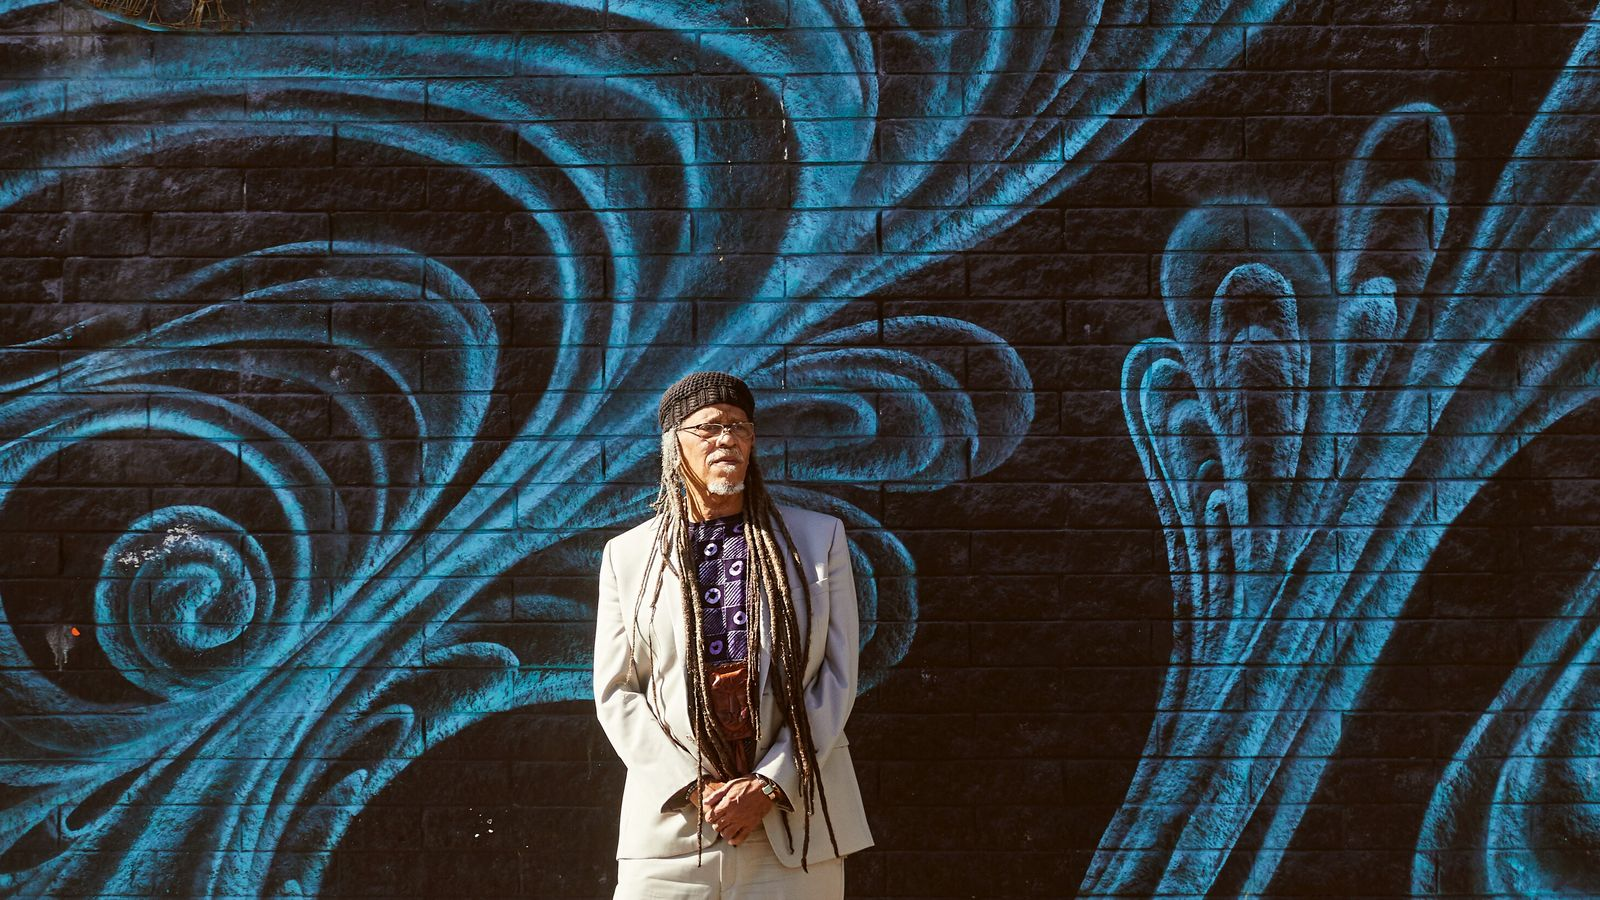 Jazz musician and native San Franciscan Sam PeoplesJr outside the Boom Boom Room in the Fillmore ...